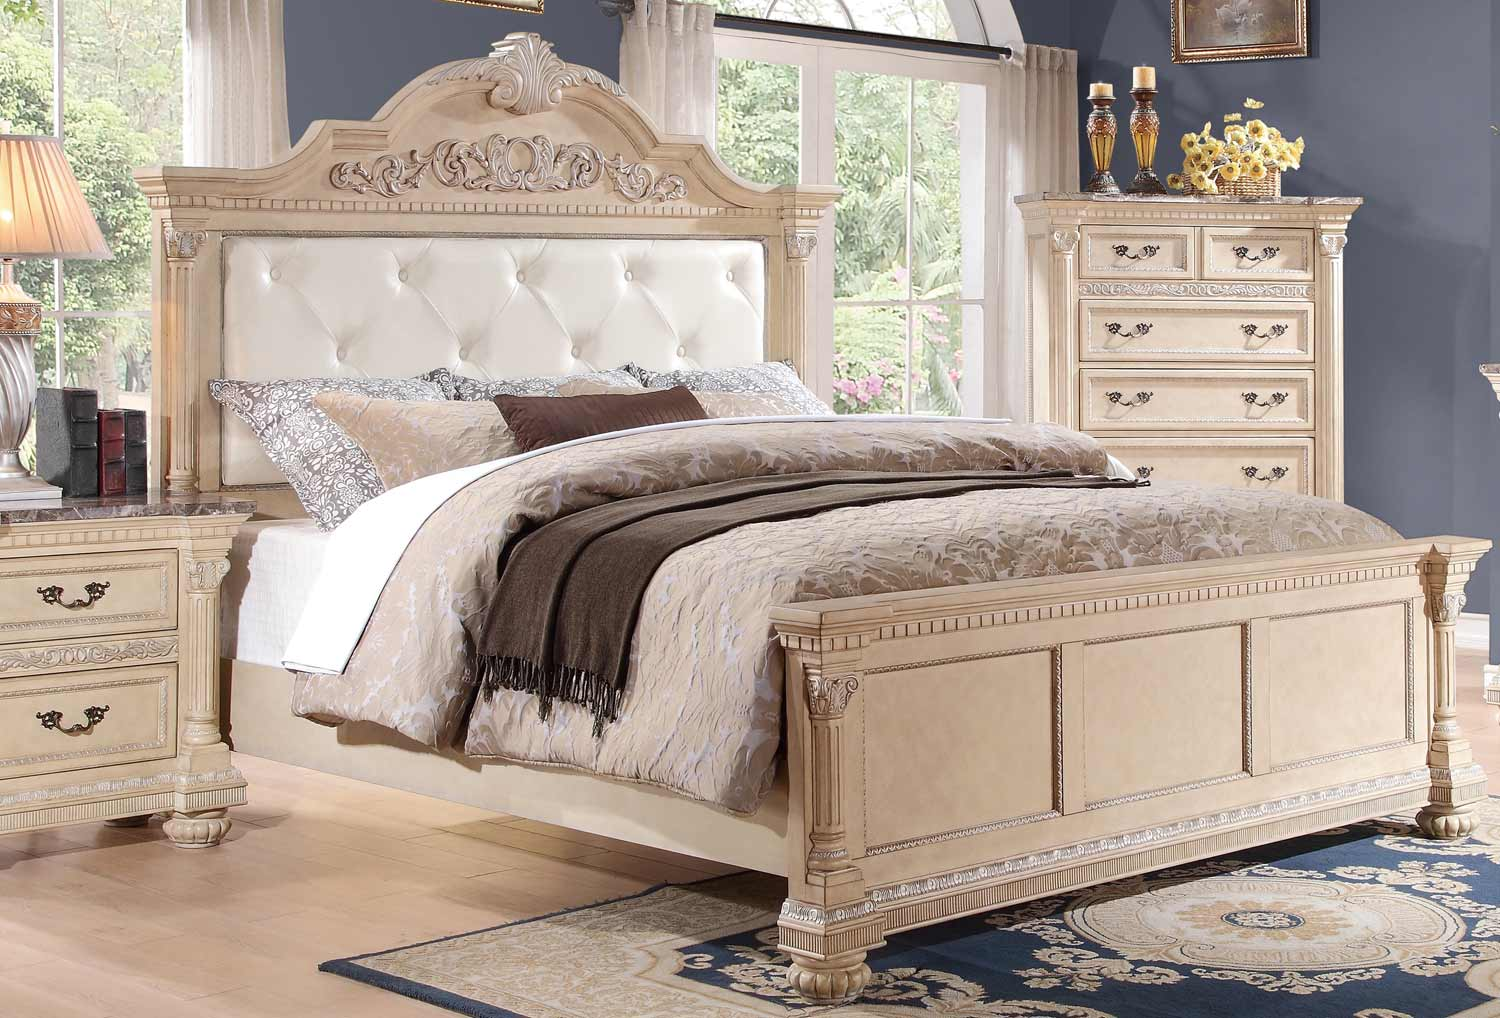 Homelegance Russian Hill Upholstered Bed - Antique White